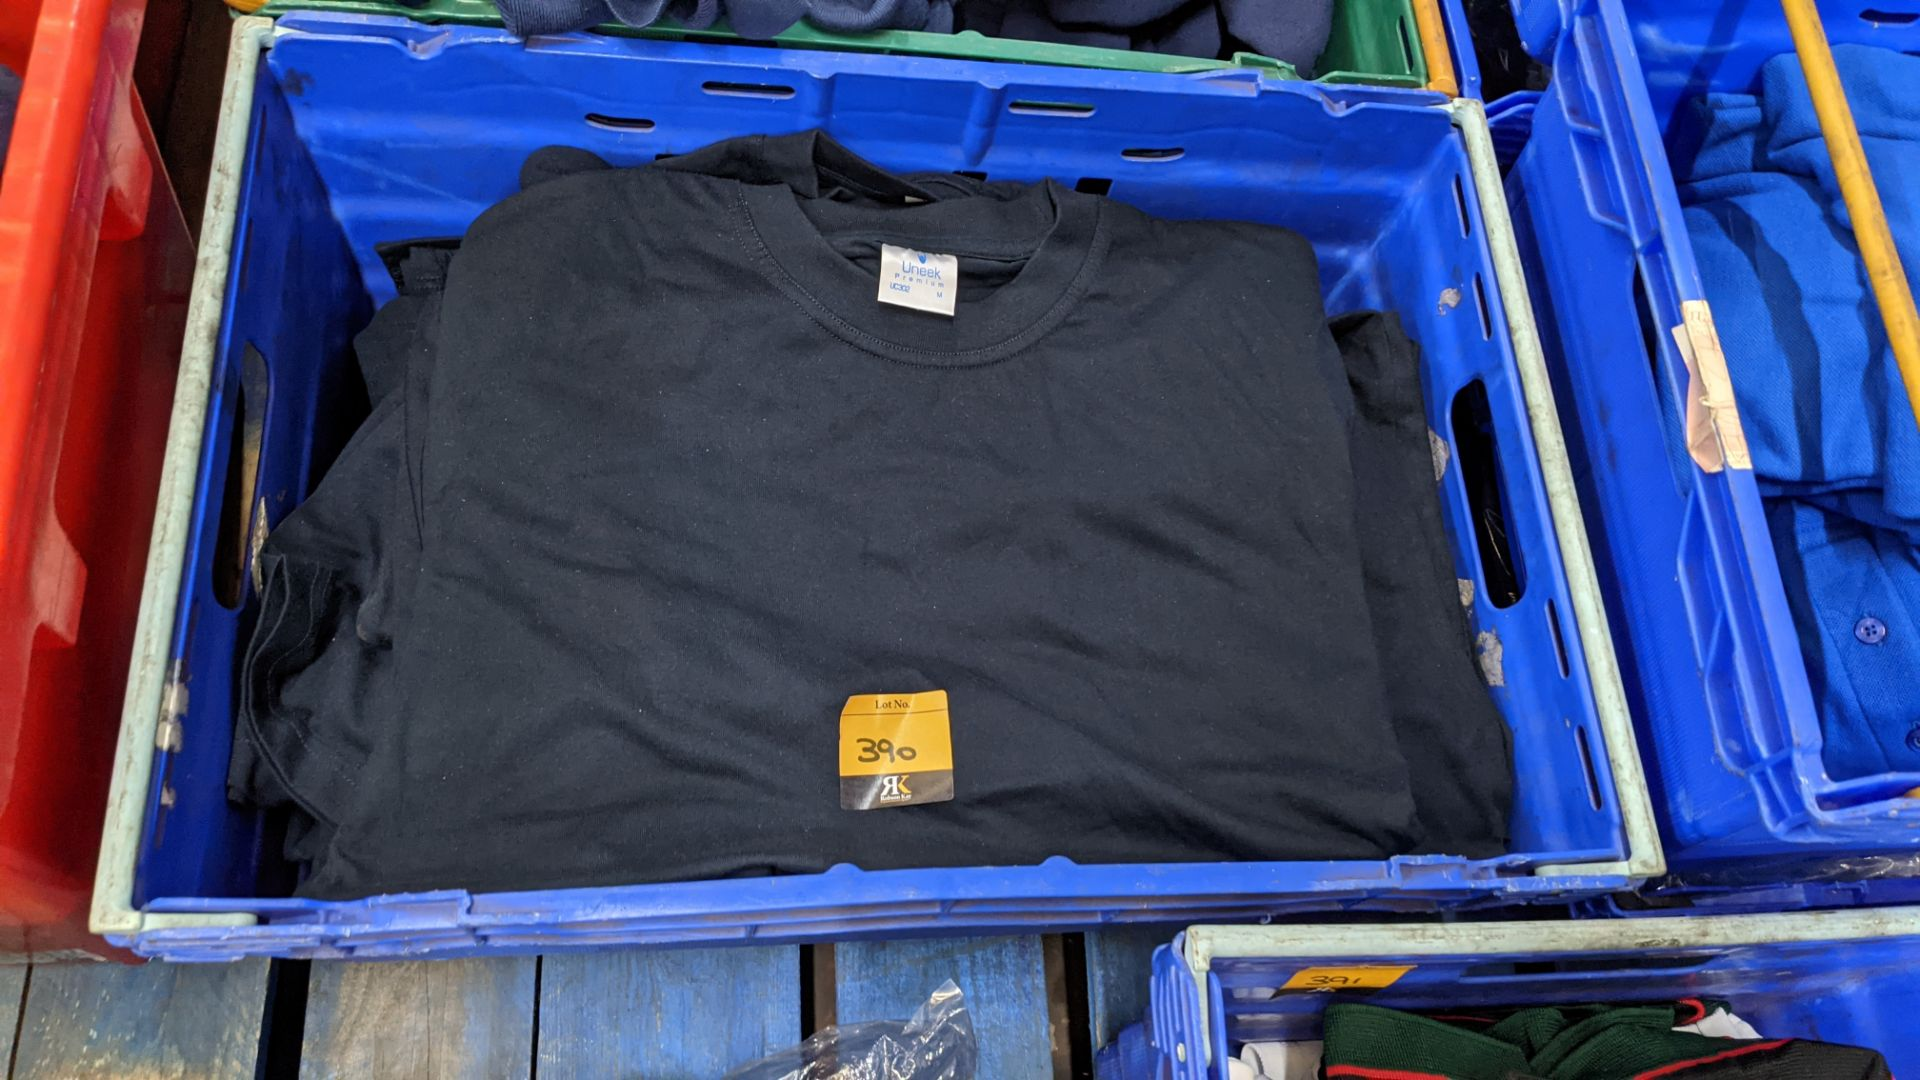 Approx 30 off black t-shirts by Uneek - Image 2 of 4